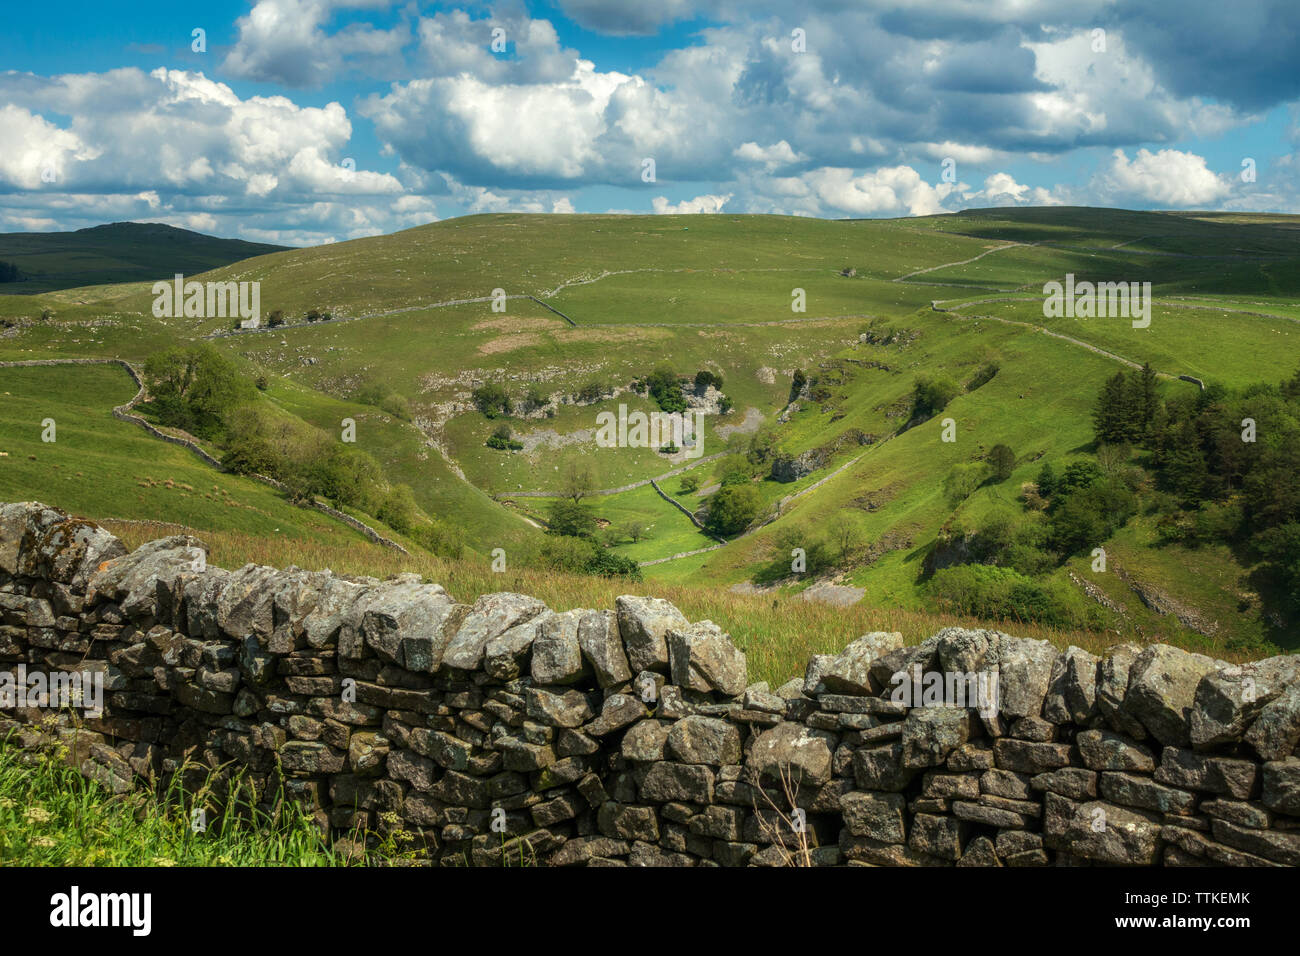 Stunning views of  the beautiful walk through Troller's Gill and Trollersdale from the road above Skyreholme near Appletreewick, Yorkshire Dales - Stock Image